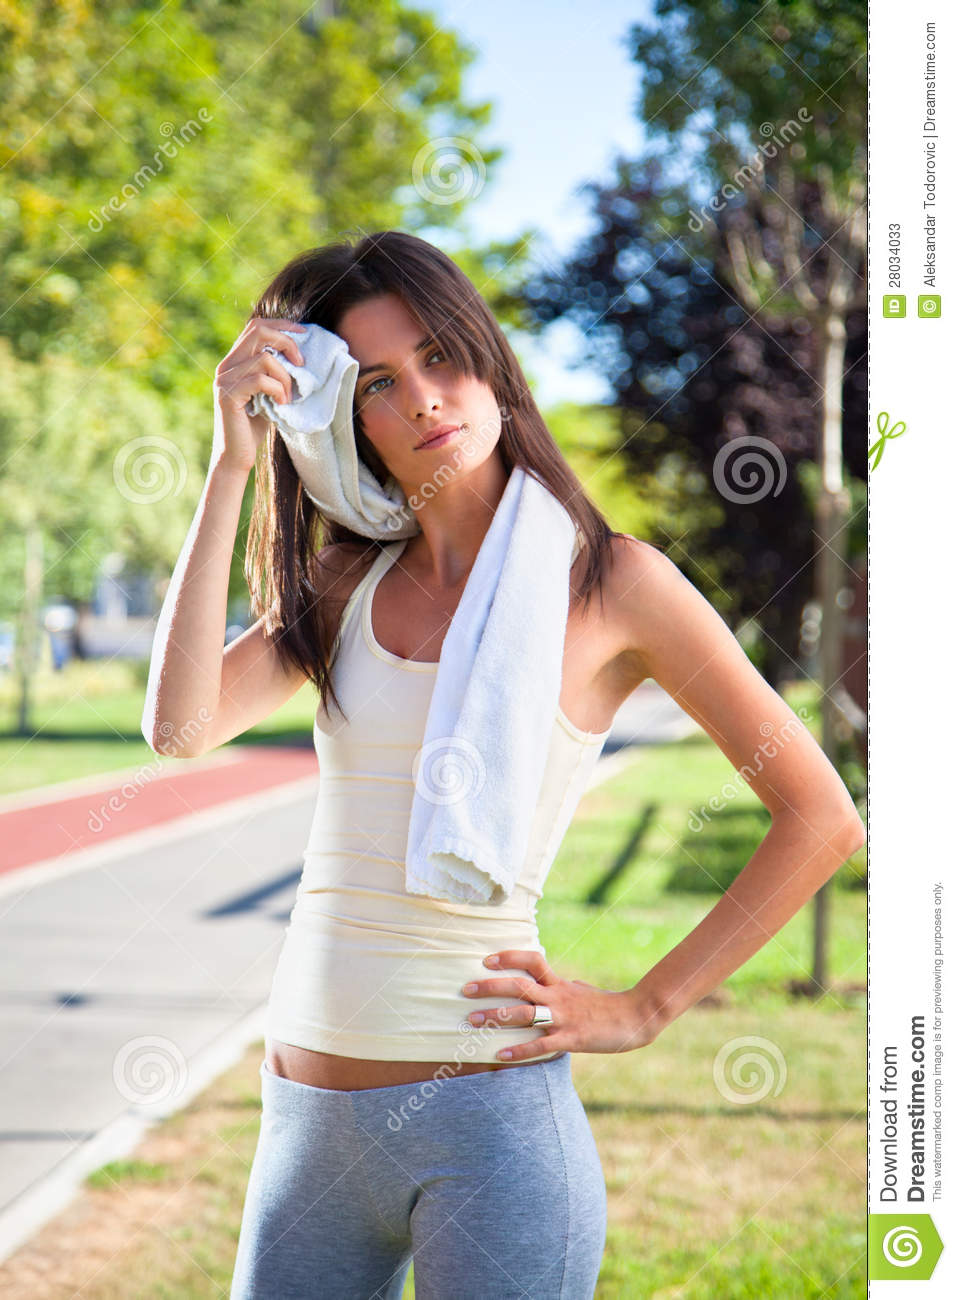 Beautiful young woman cleaning her sweat with a towel